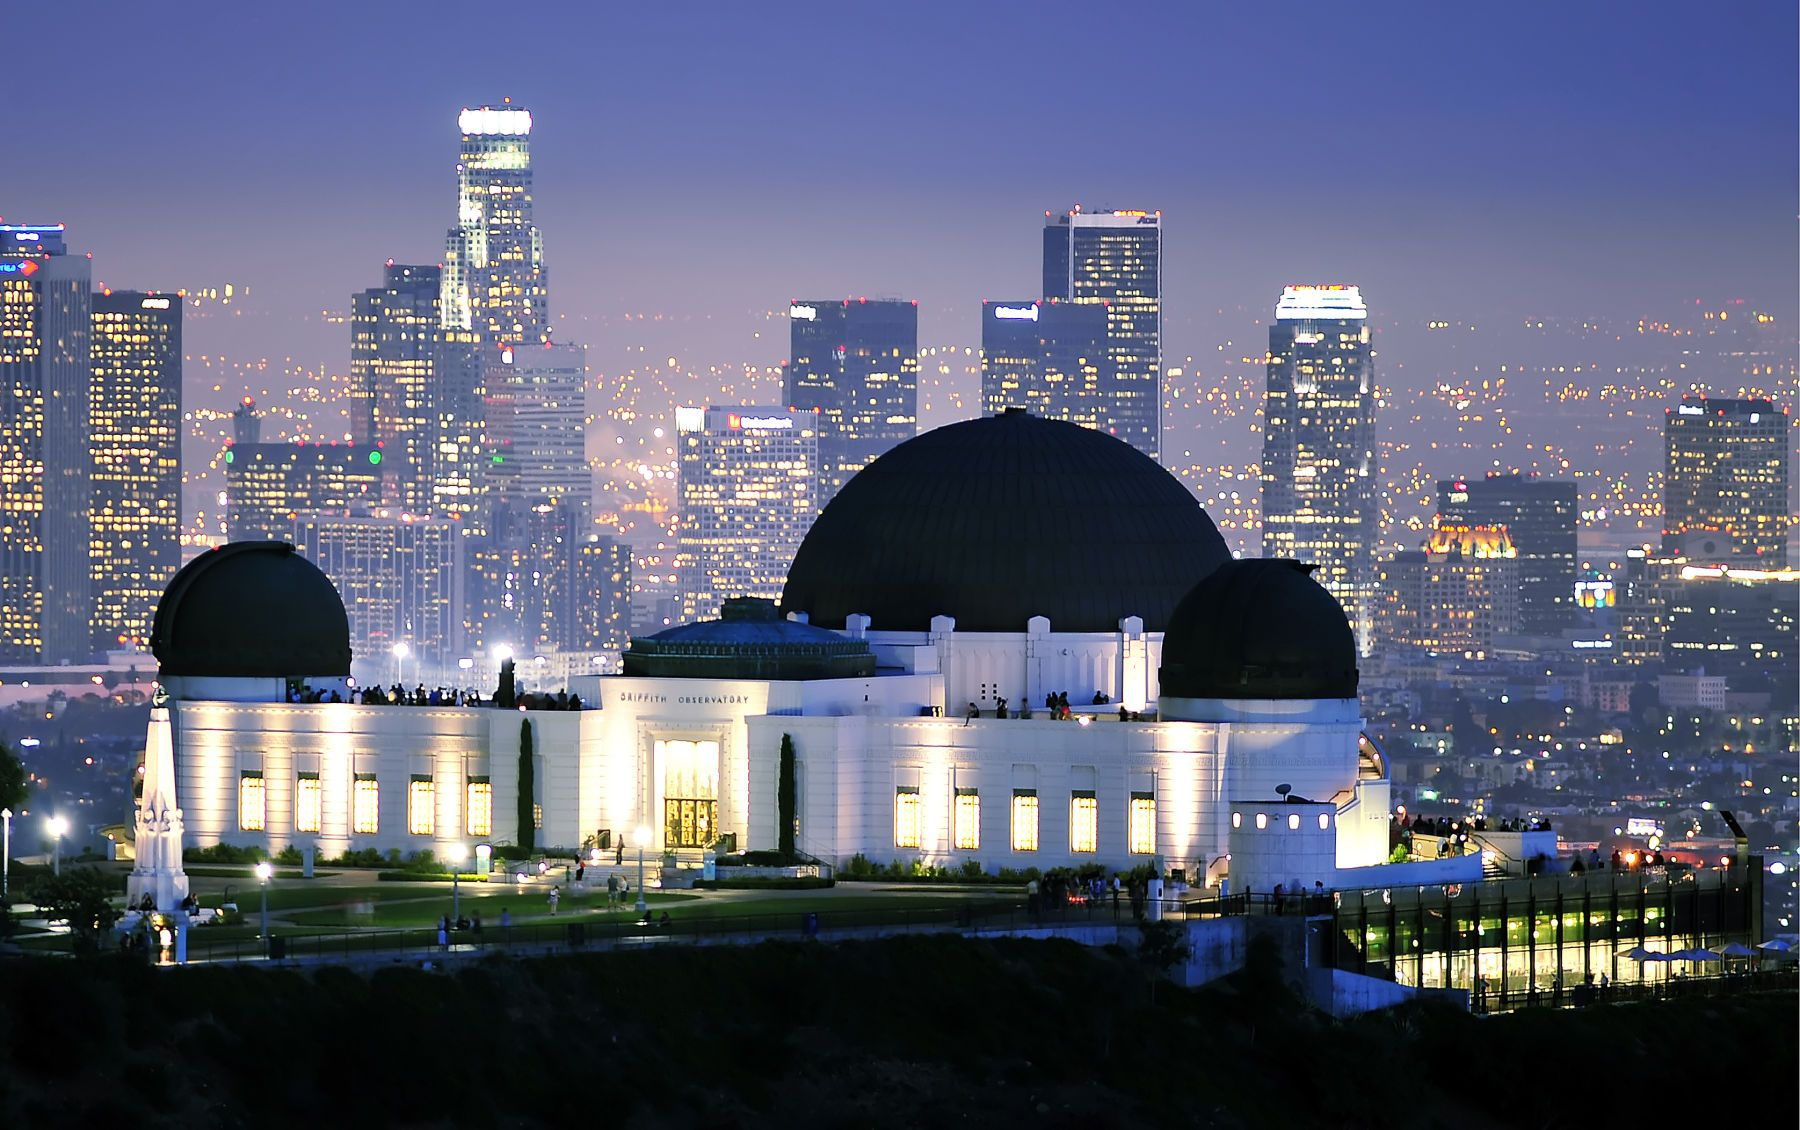 Griffith observatory world 39 s famous samuel oschin for Best parking near lax